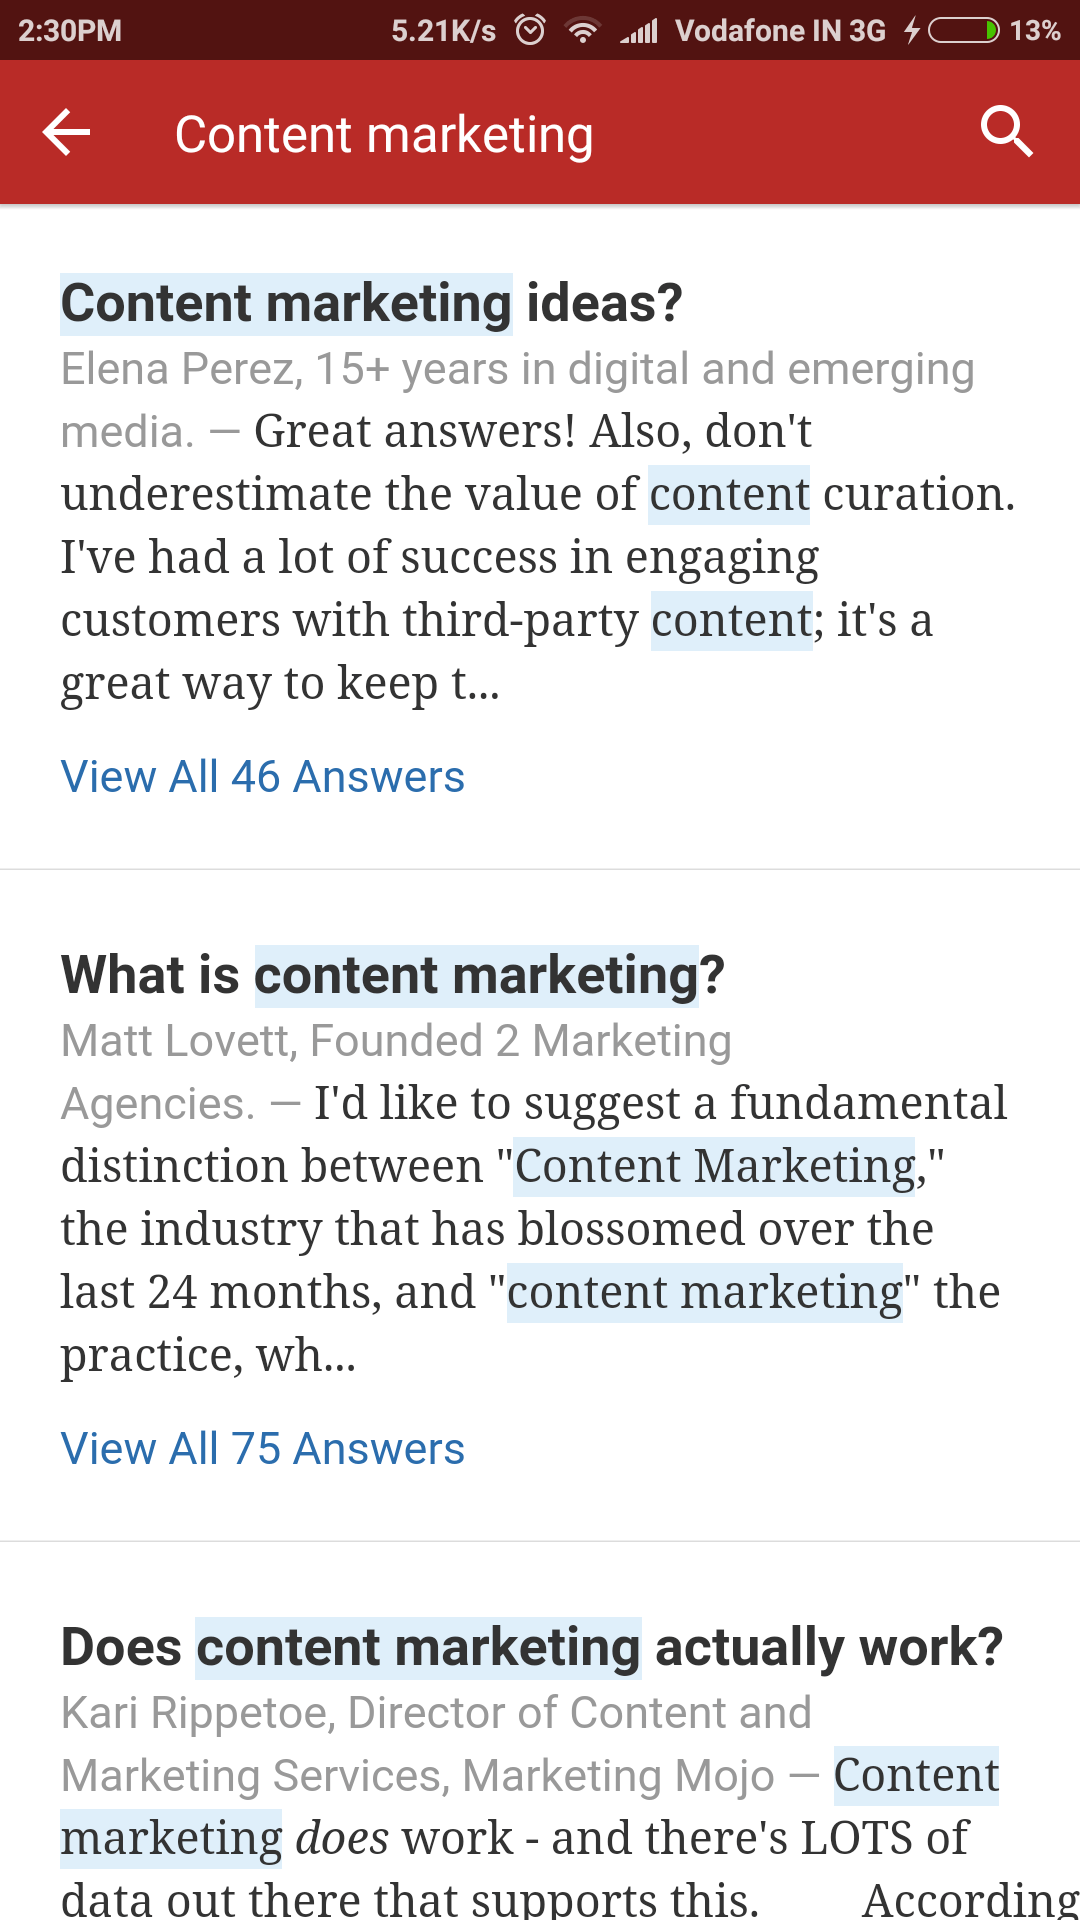 Quora Android App Search Result